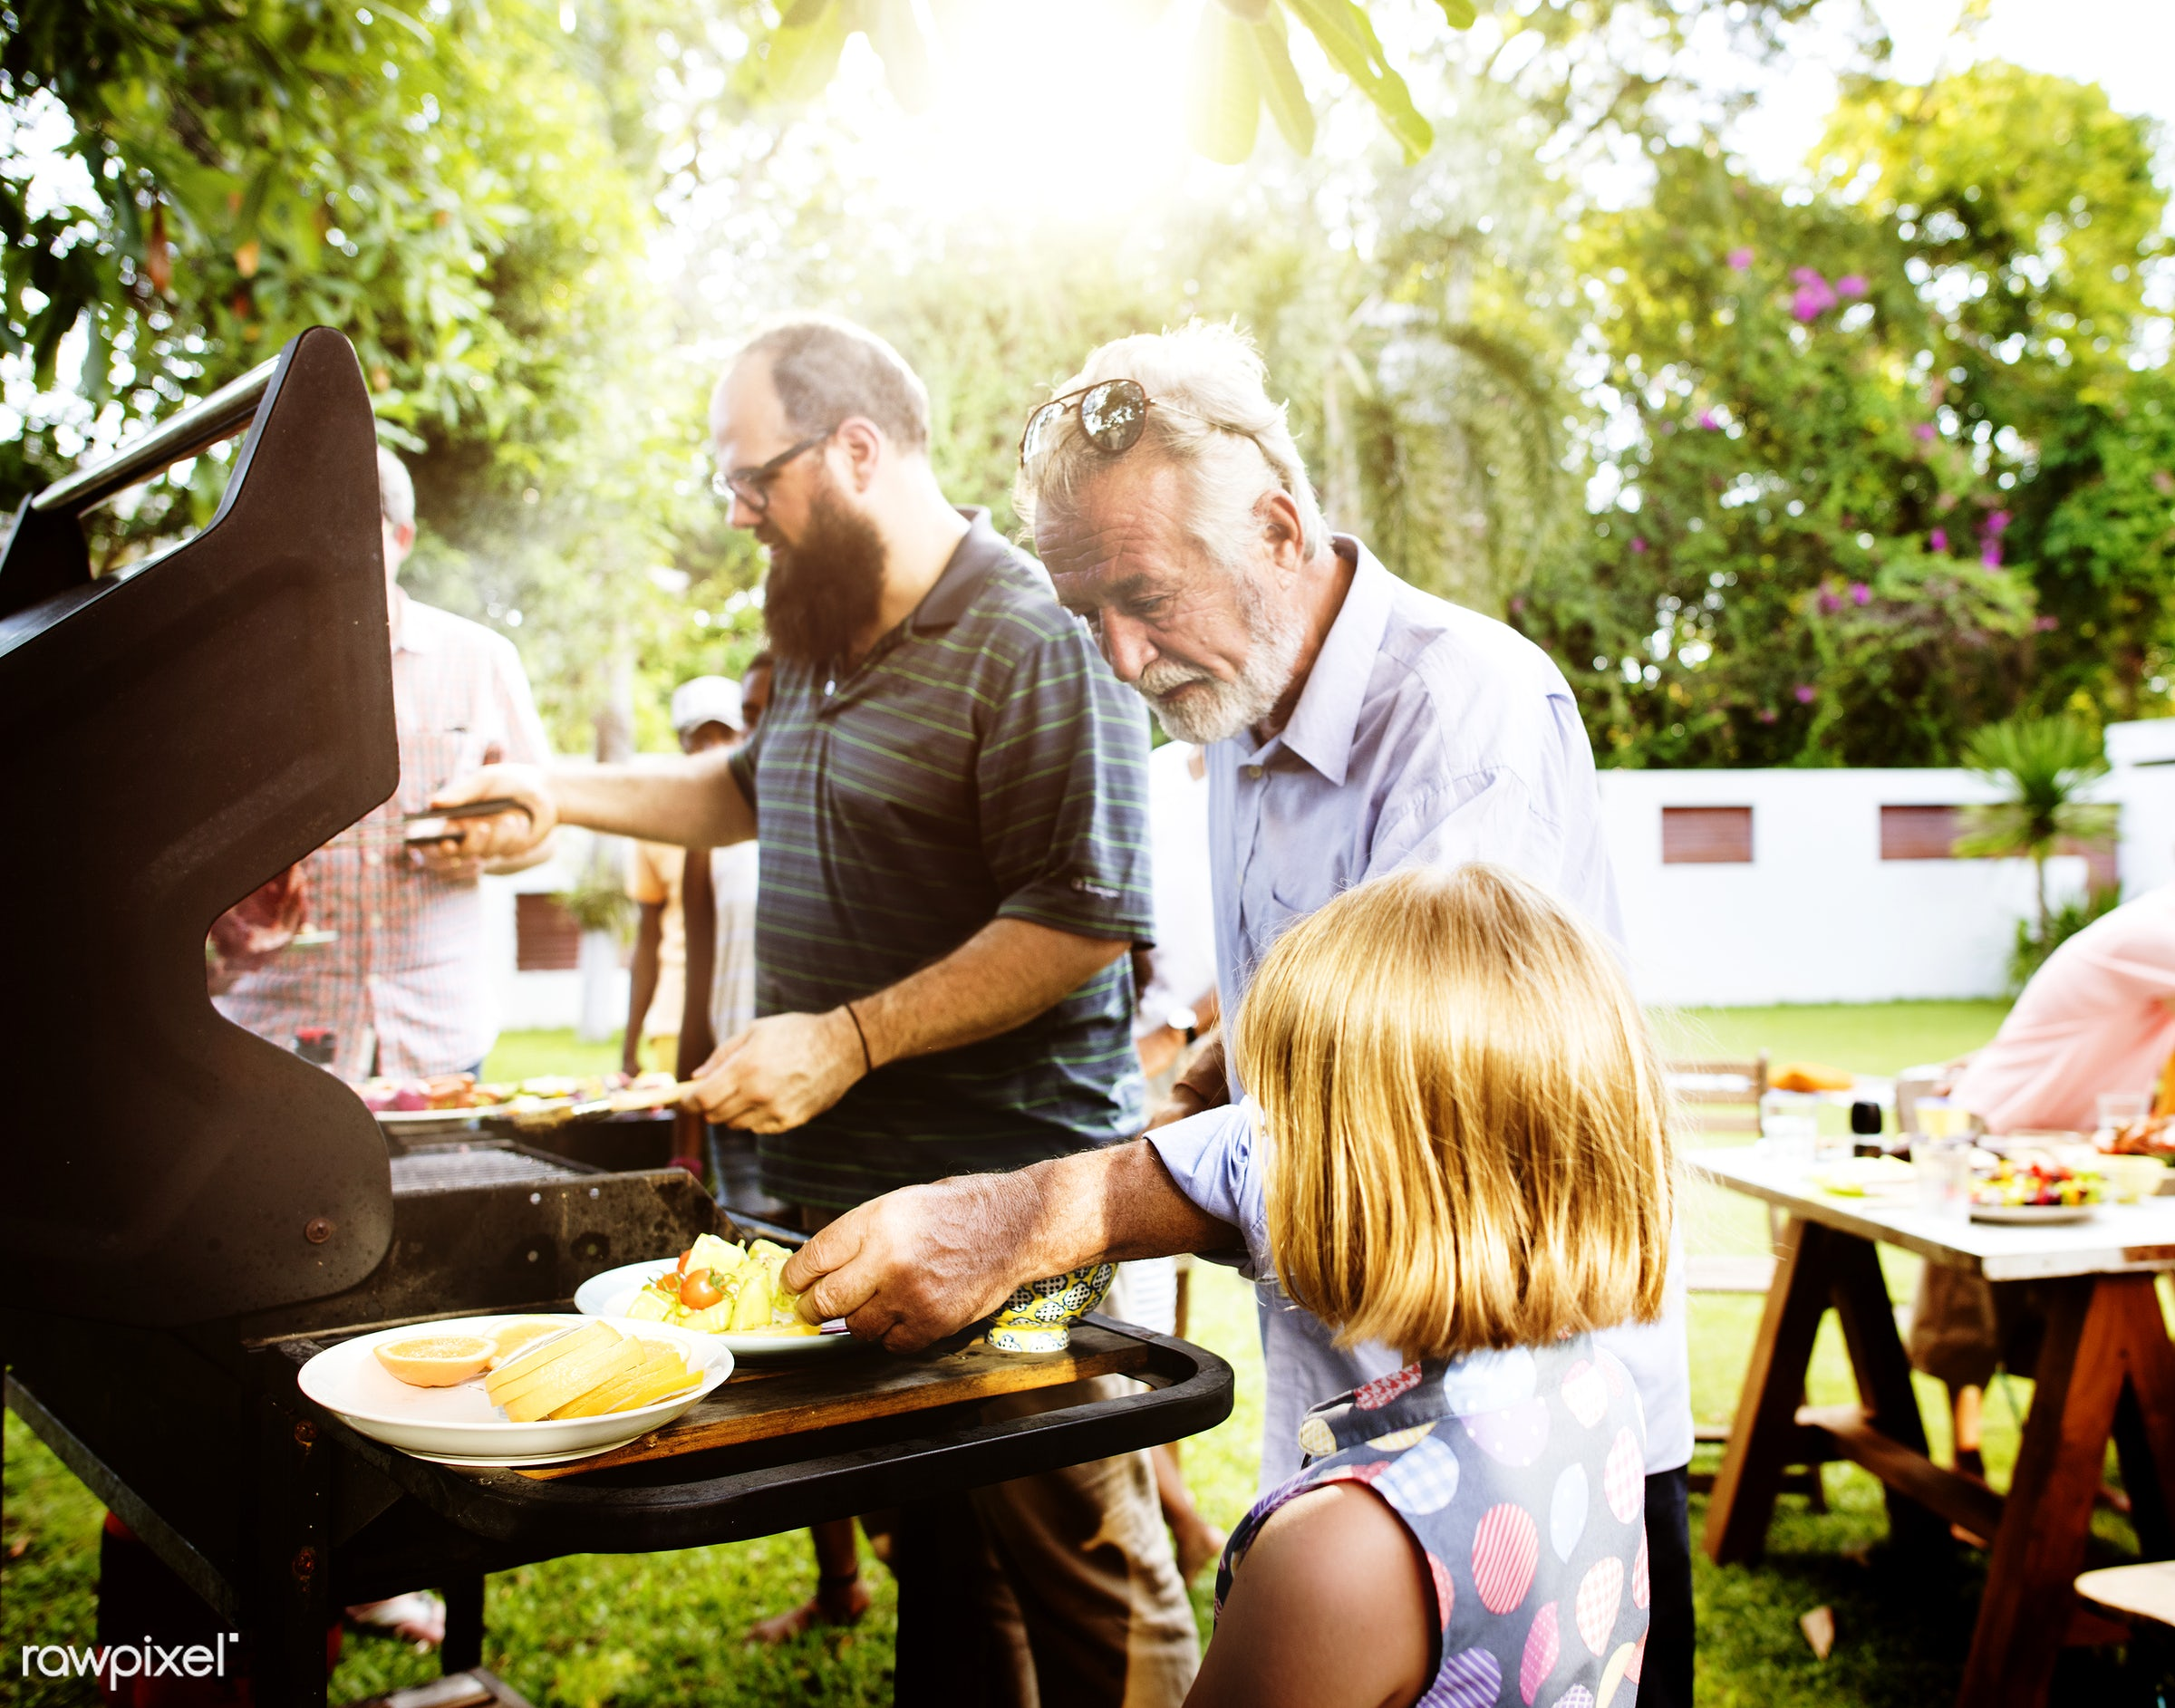 parents, grill, yard, diverse, steaks, homemade, party, people, together, family, cooking, meats, bbq, meal, park, grass,...